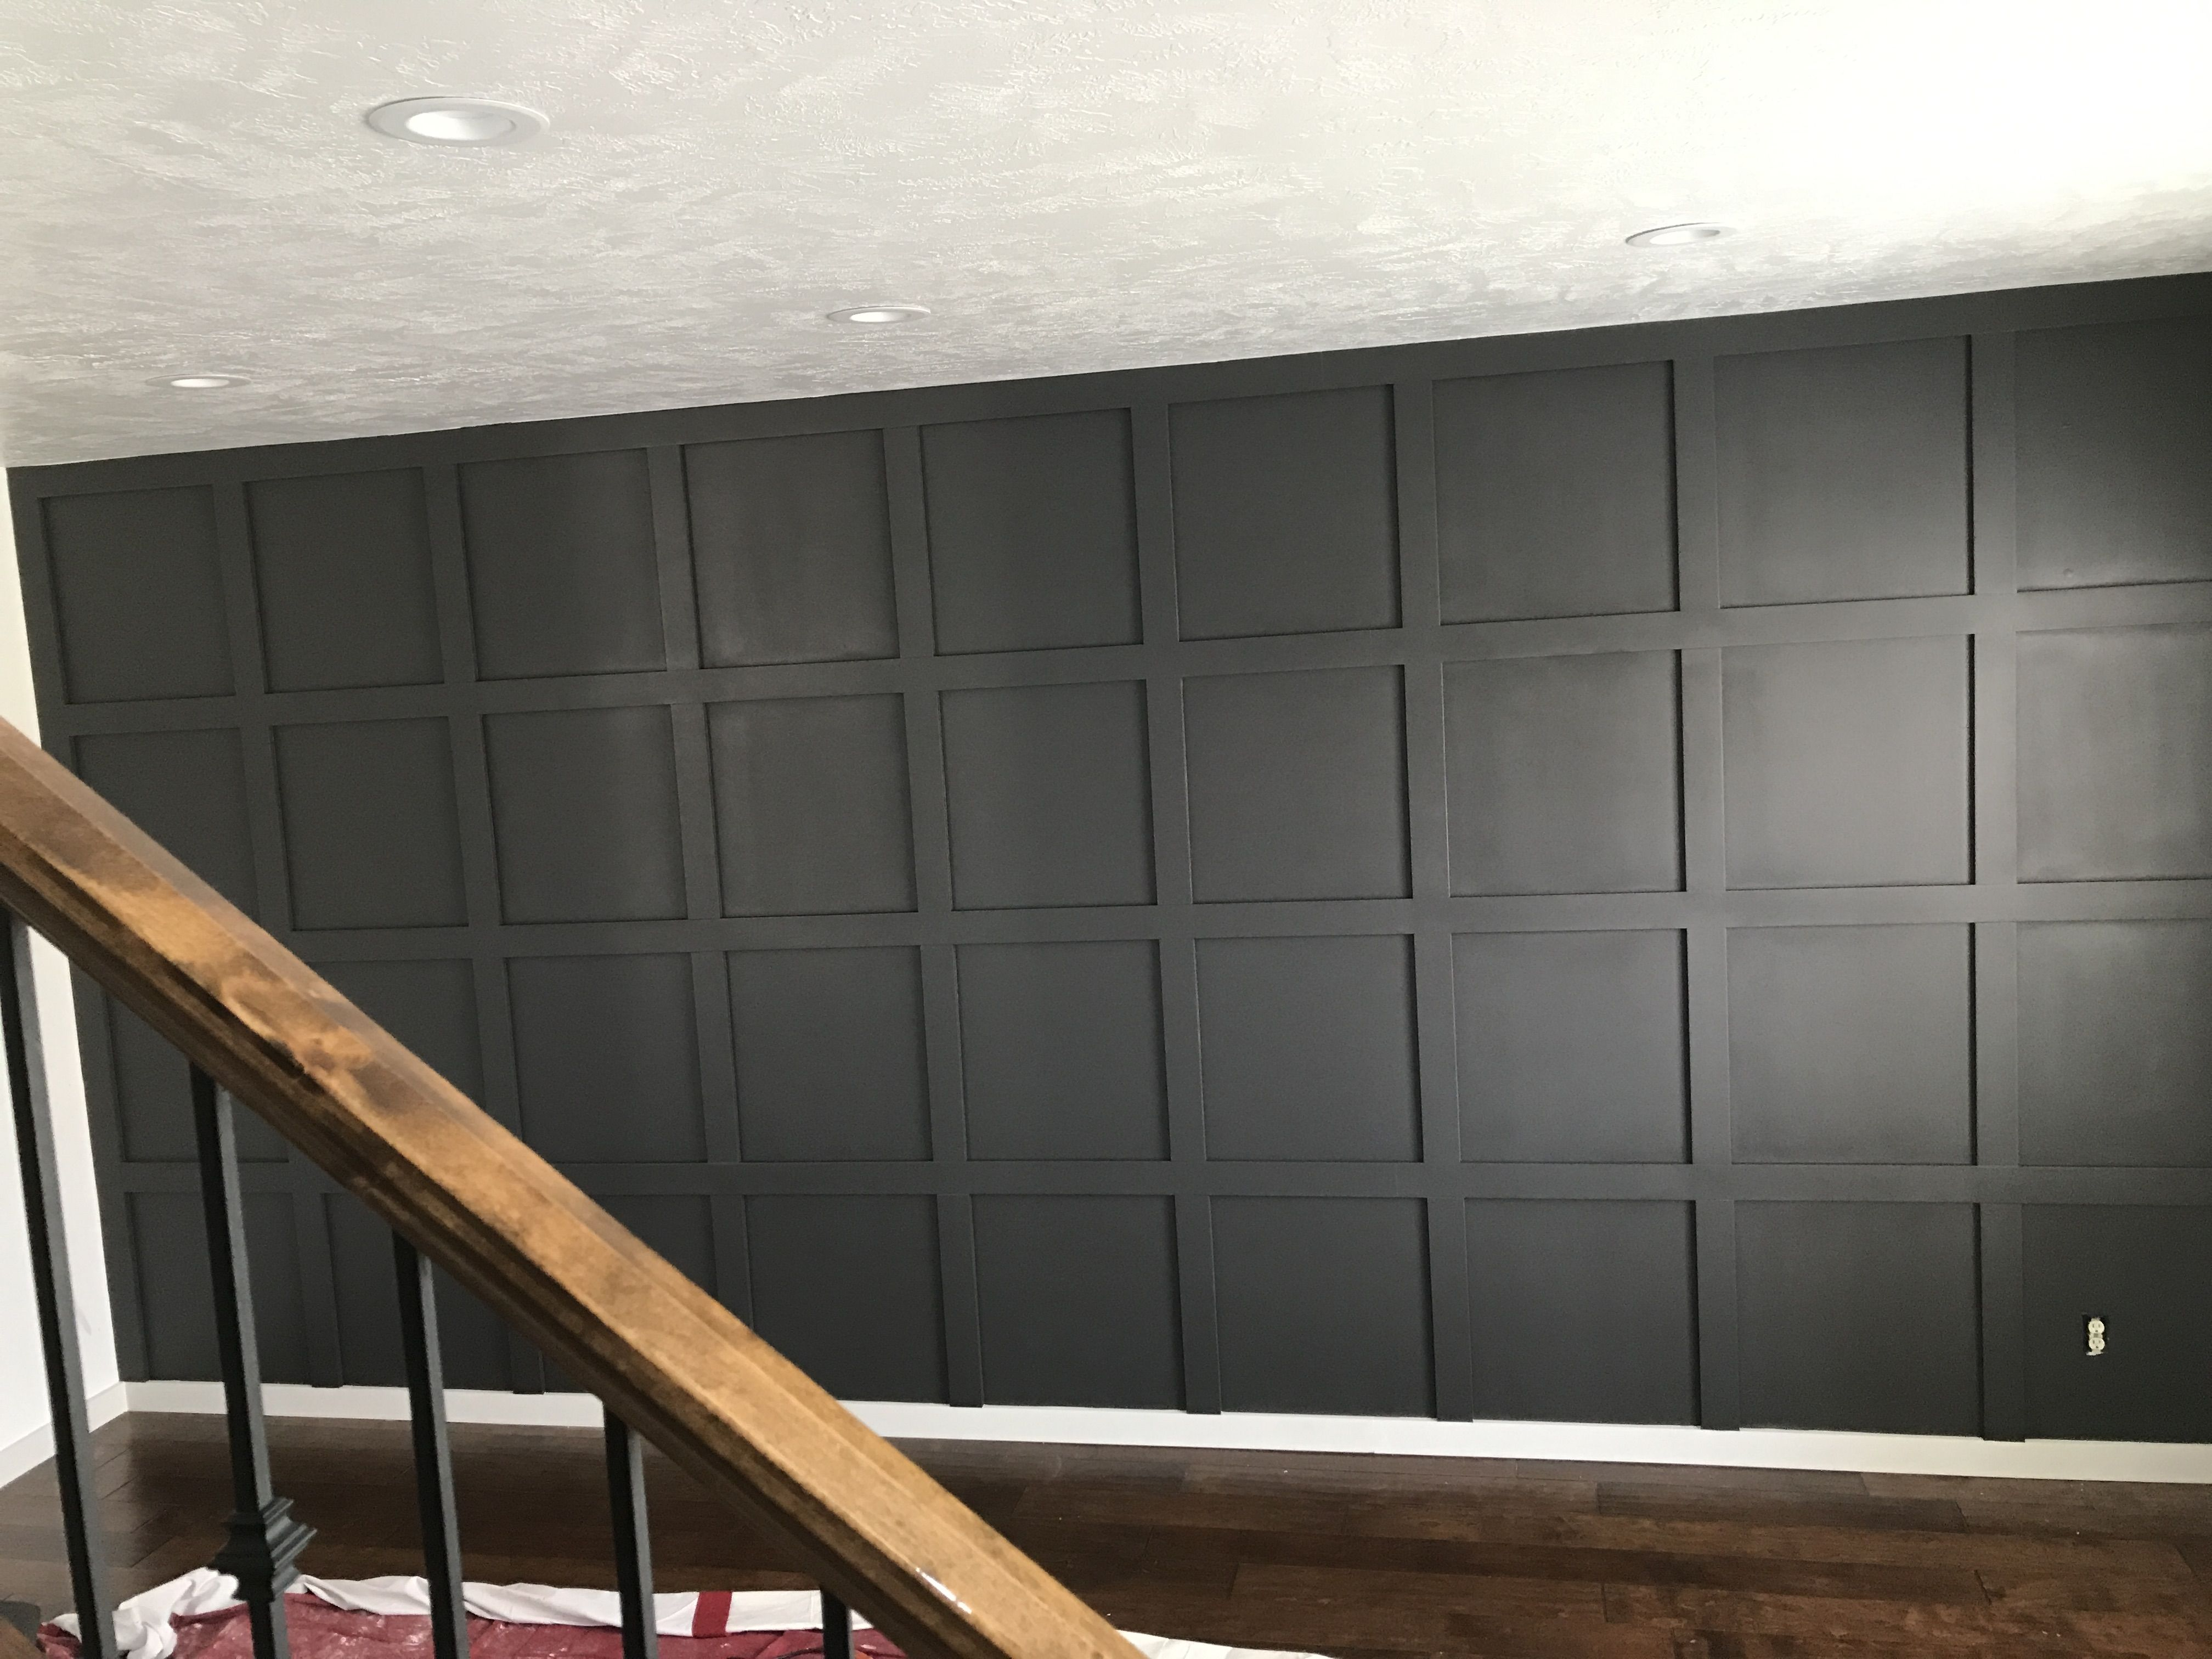 Black Grid Wall Grid Board And Batten Square Board And Batten Basement House Textured Walls Board And Batten